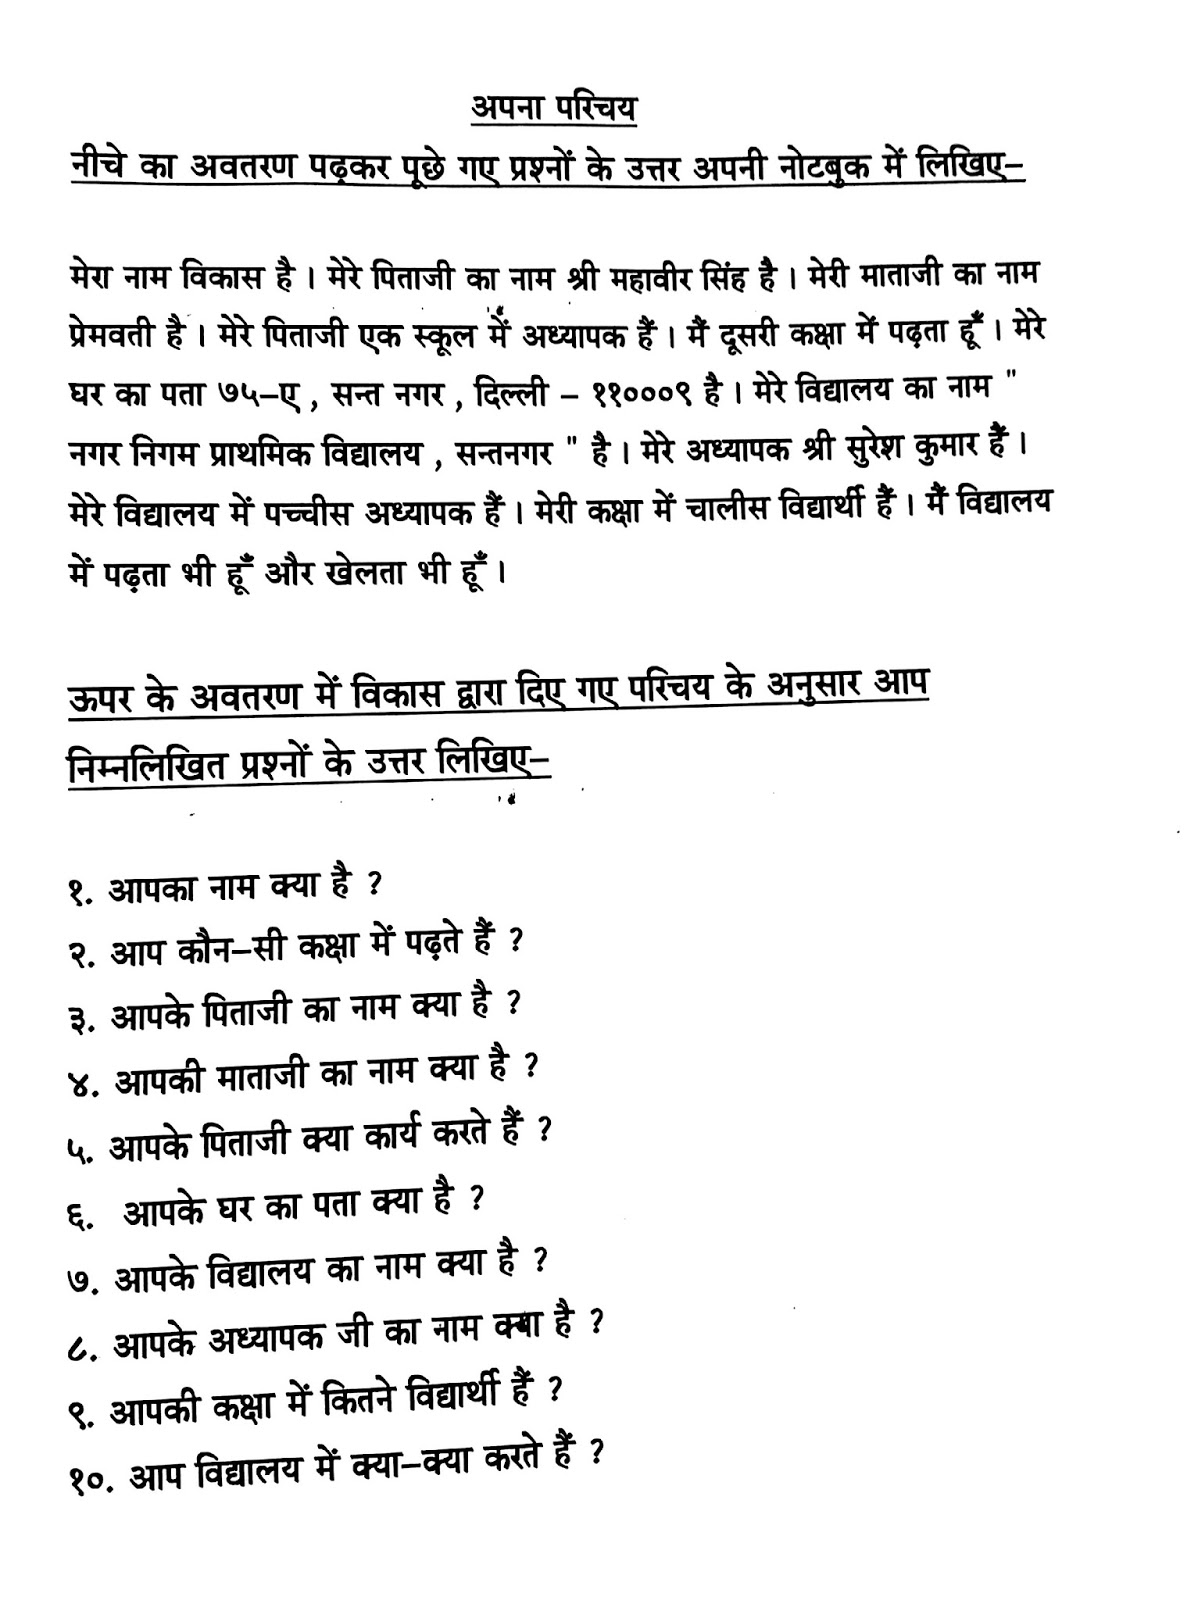 Hindi Grammar Work Sheet Collection For Classes 5 6 7 Amp 8 Compositions Topic List For Classes